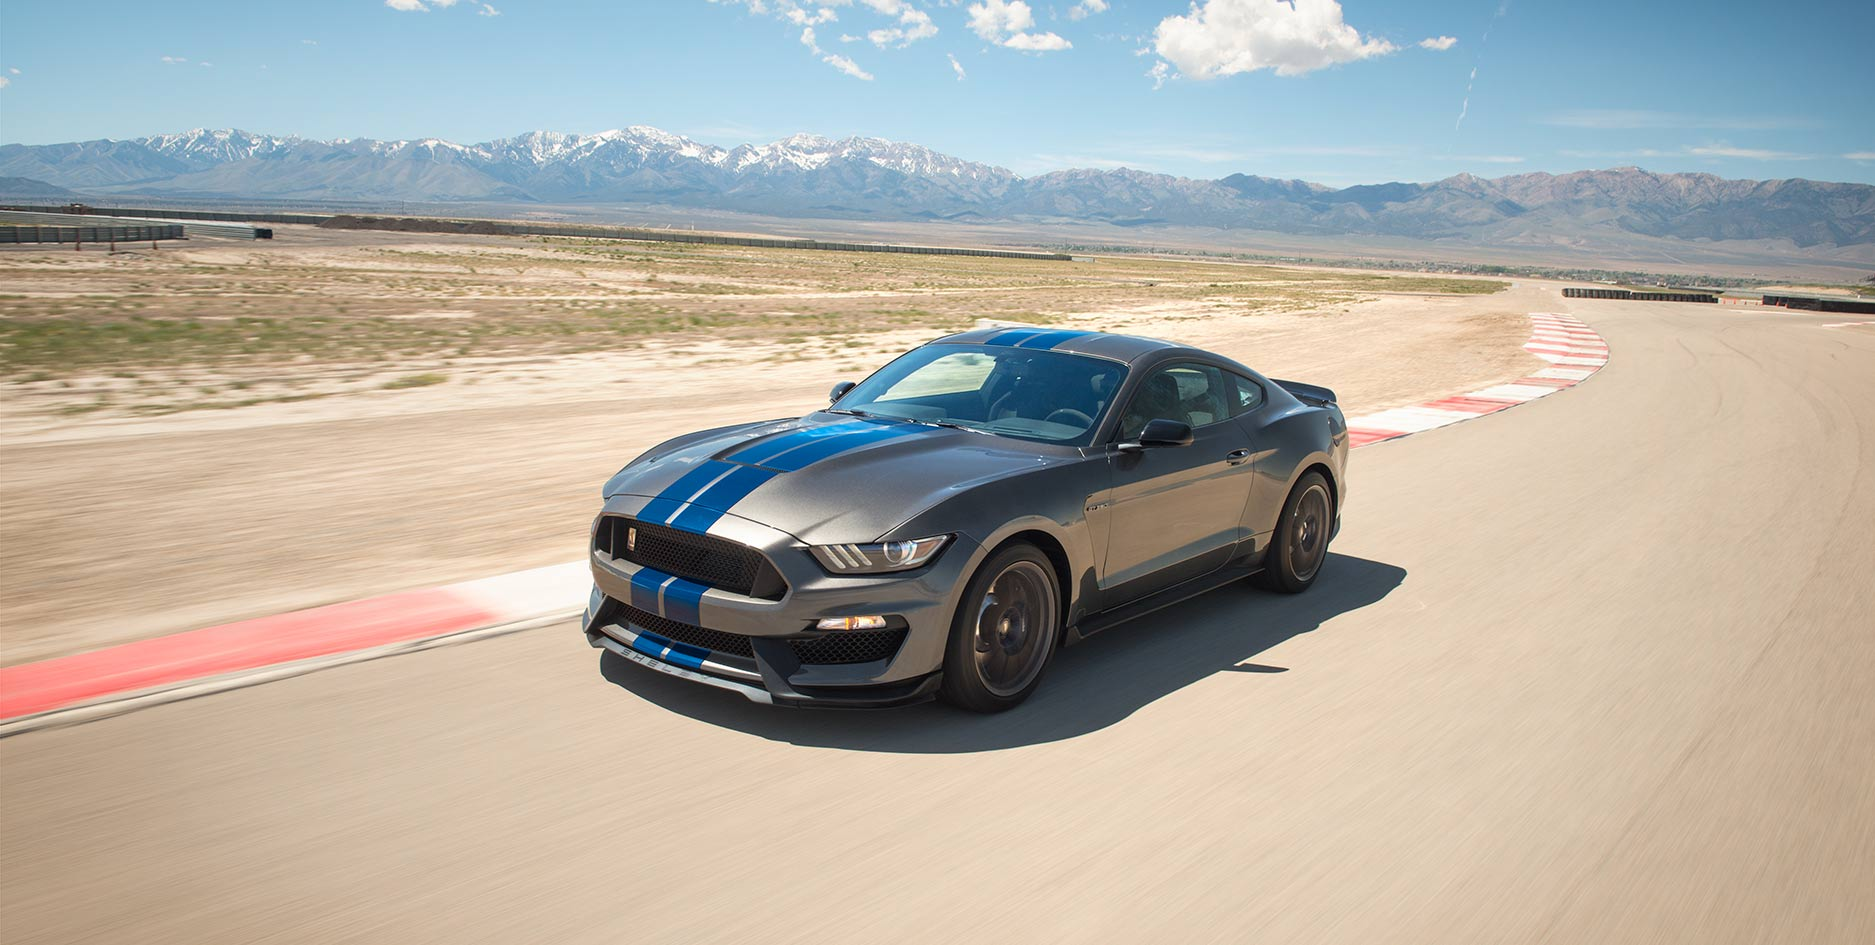 Ford Shelby Gt350 #11